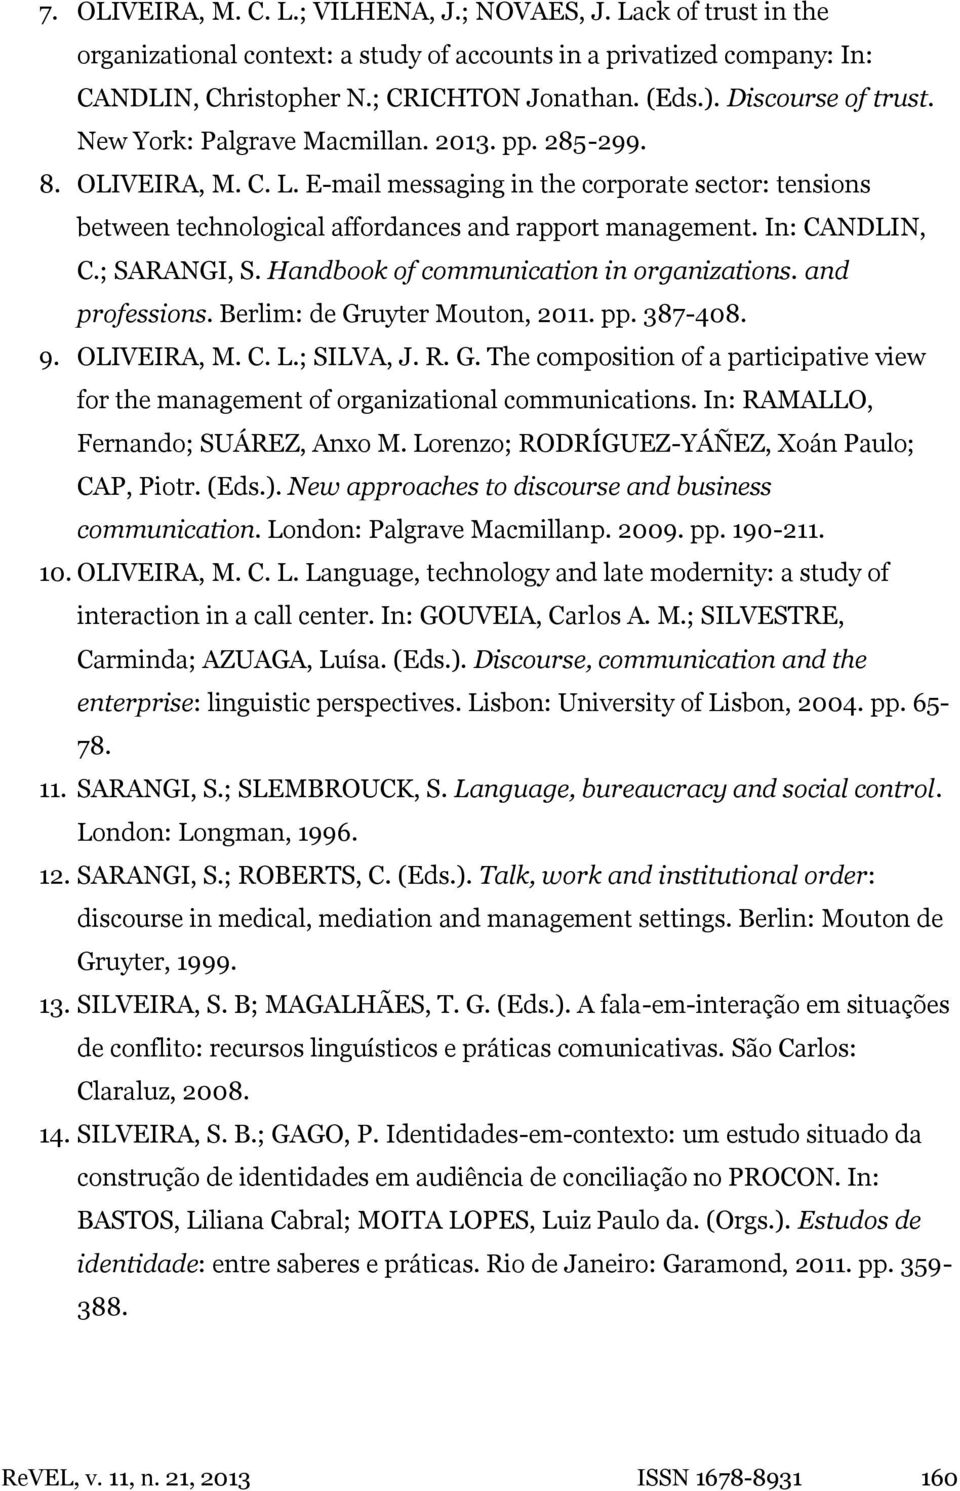 In: CANDLIN, C.; SARANGI, S. Handbook of communication in organizations. and professions. Berlim: de Gruyter Mouton, 2011. pp. 387-408. 9. OLIVEIRA, M. C. L.; SILVA, J. R. G. The composition of a participative view for the management of organizational communications.